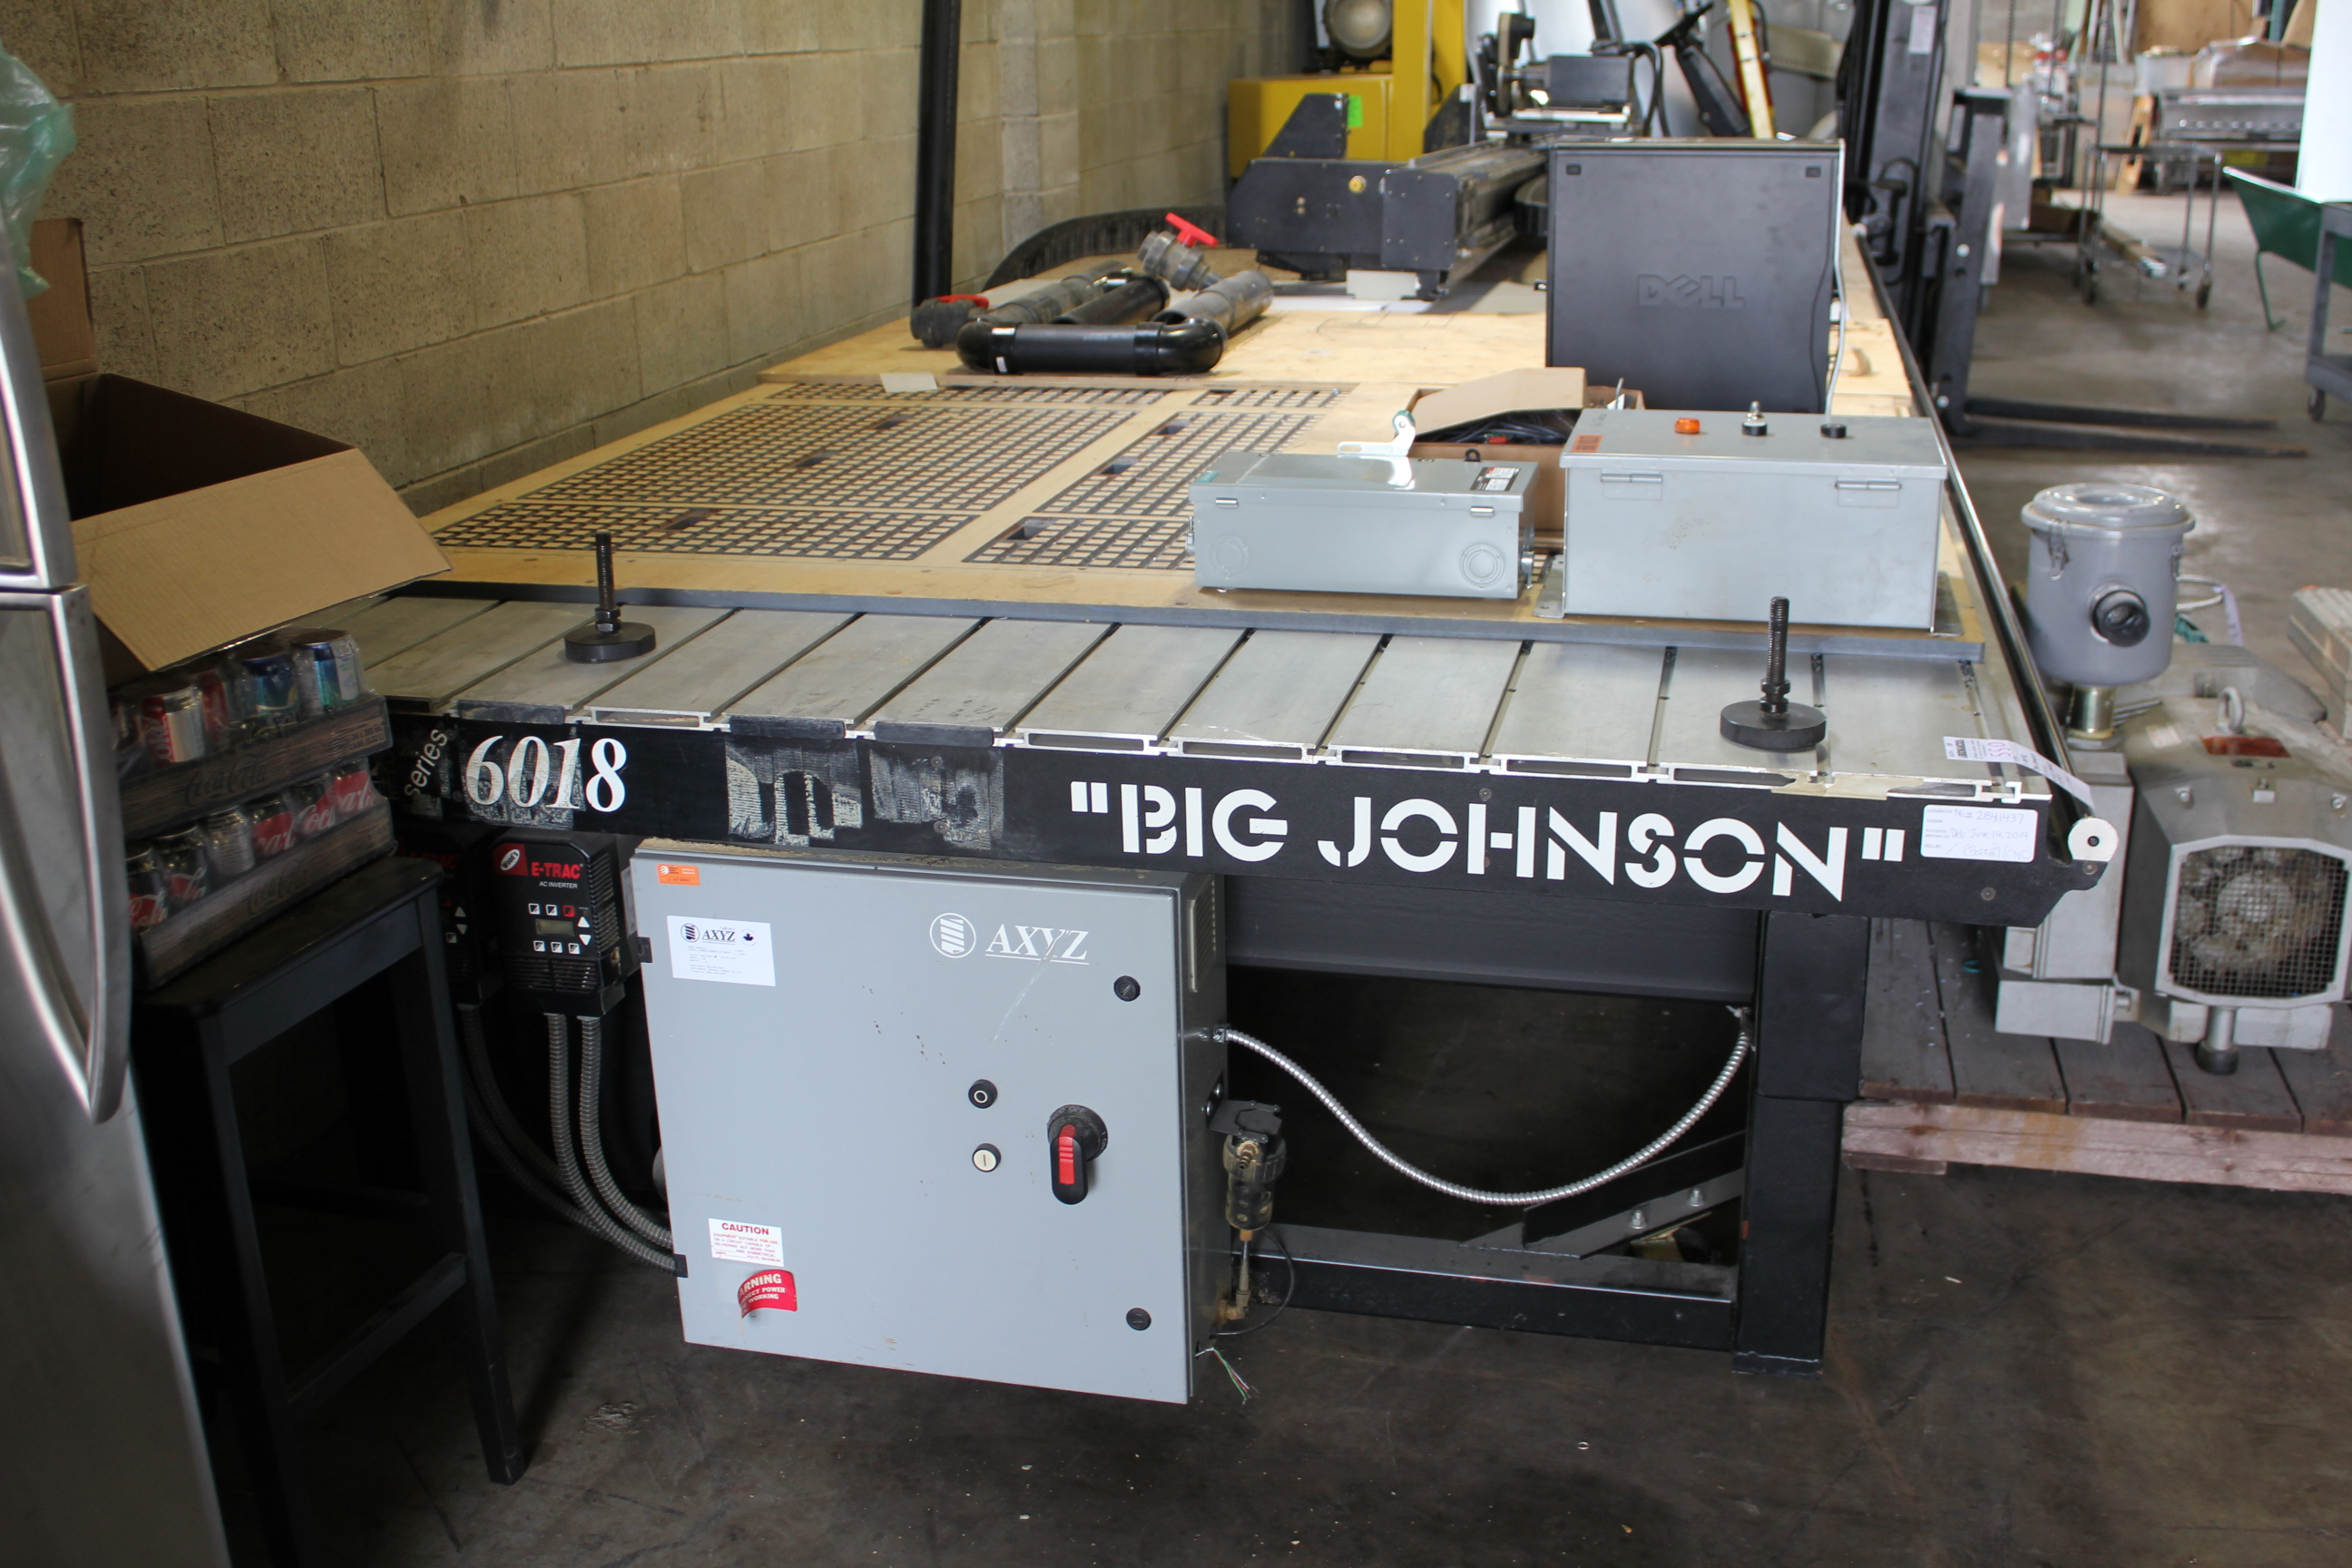 CONCLUDED! - MULTI INDUSTRY - AXYZ BIG JOHNSON 6018 PANEL